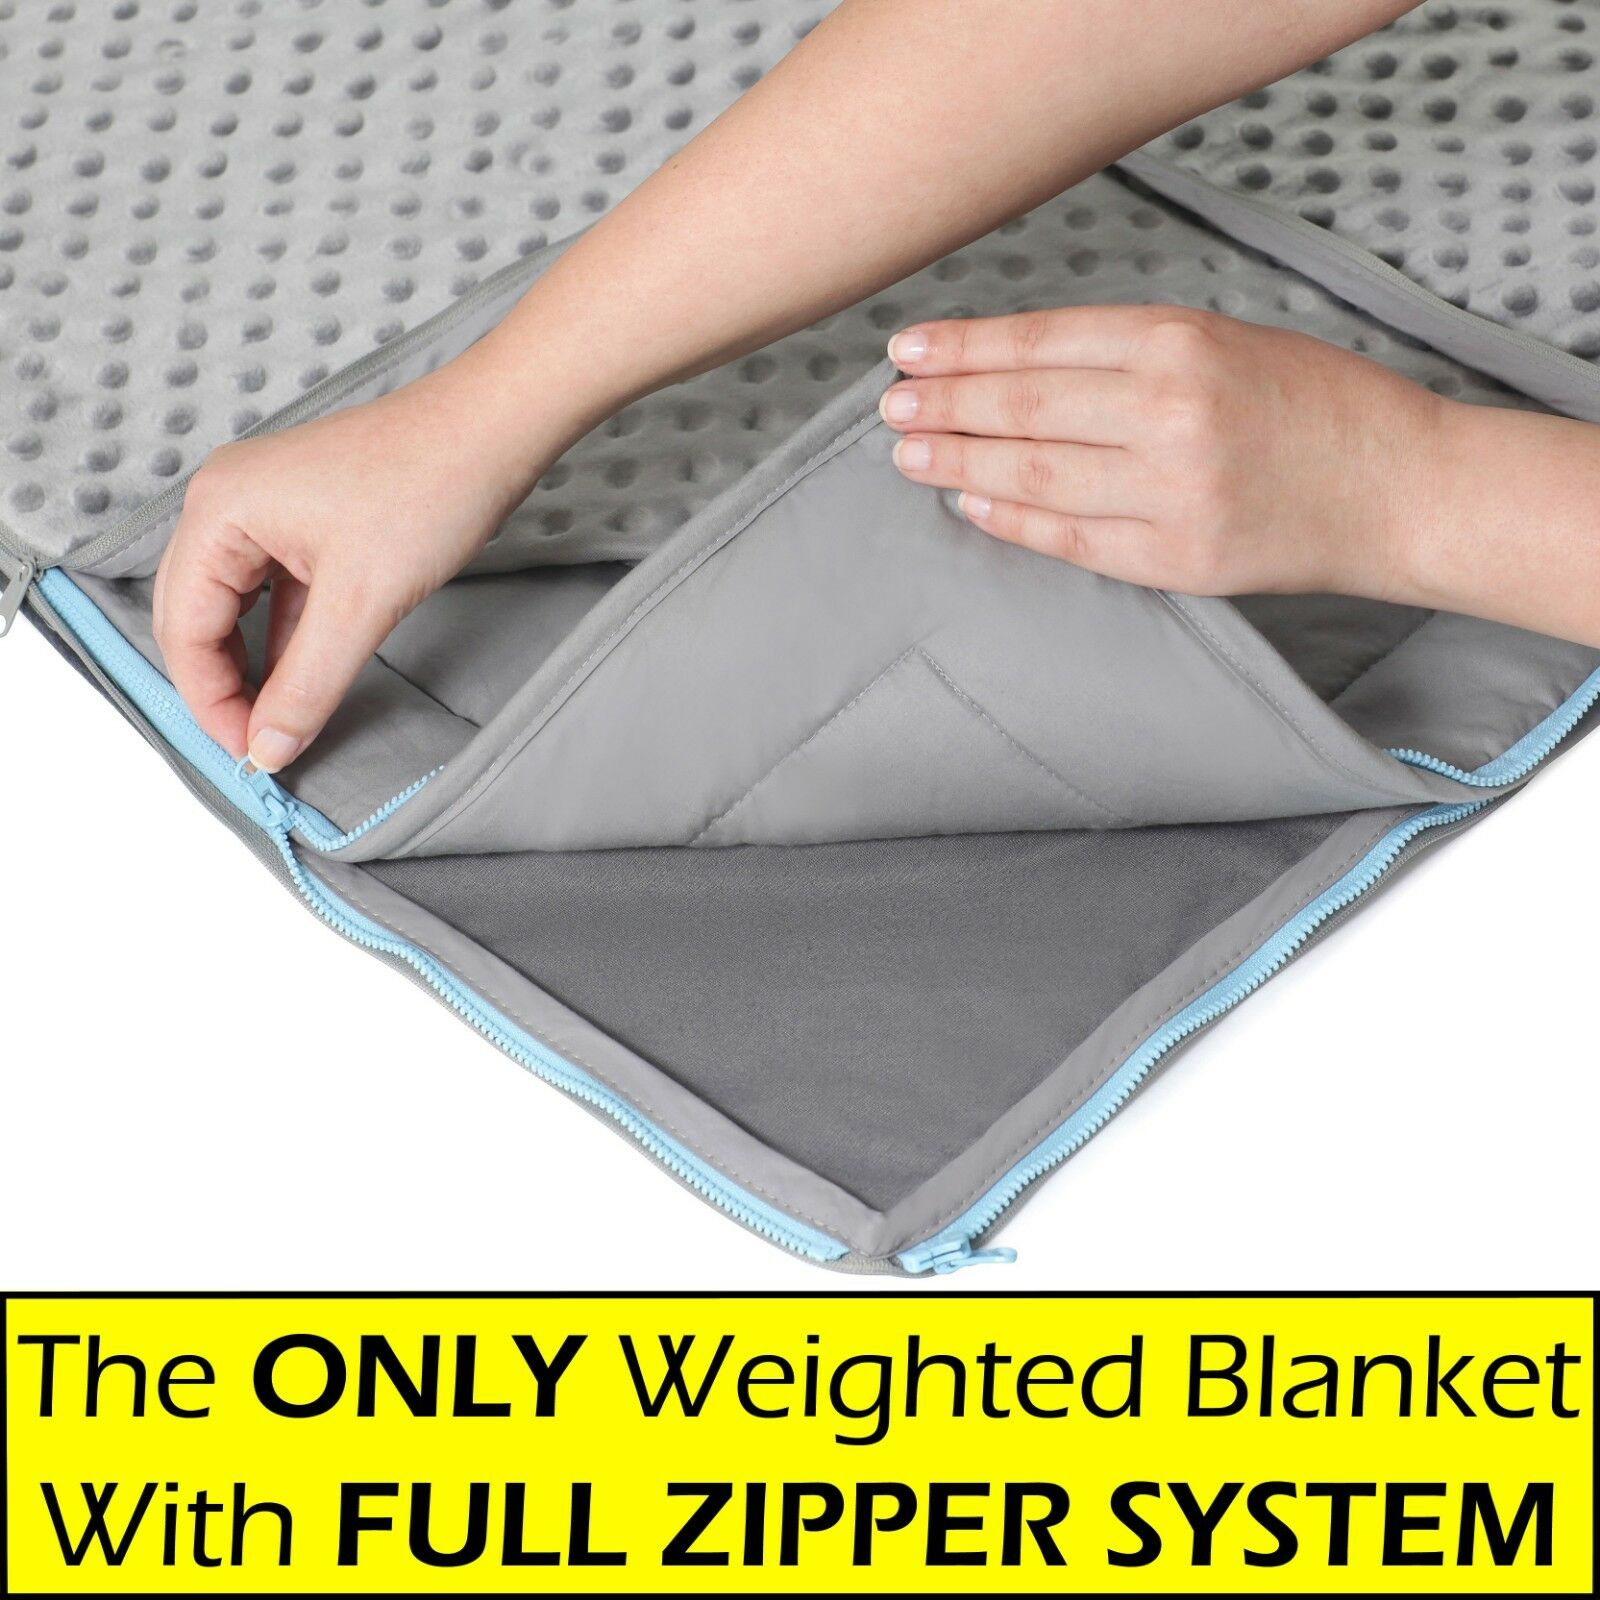 15lb Weighted Blanket & FREE MINKY Cover - For Adults & Kids, Full Zipper System